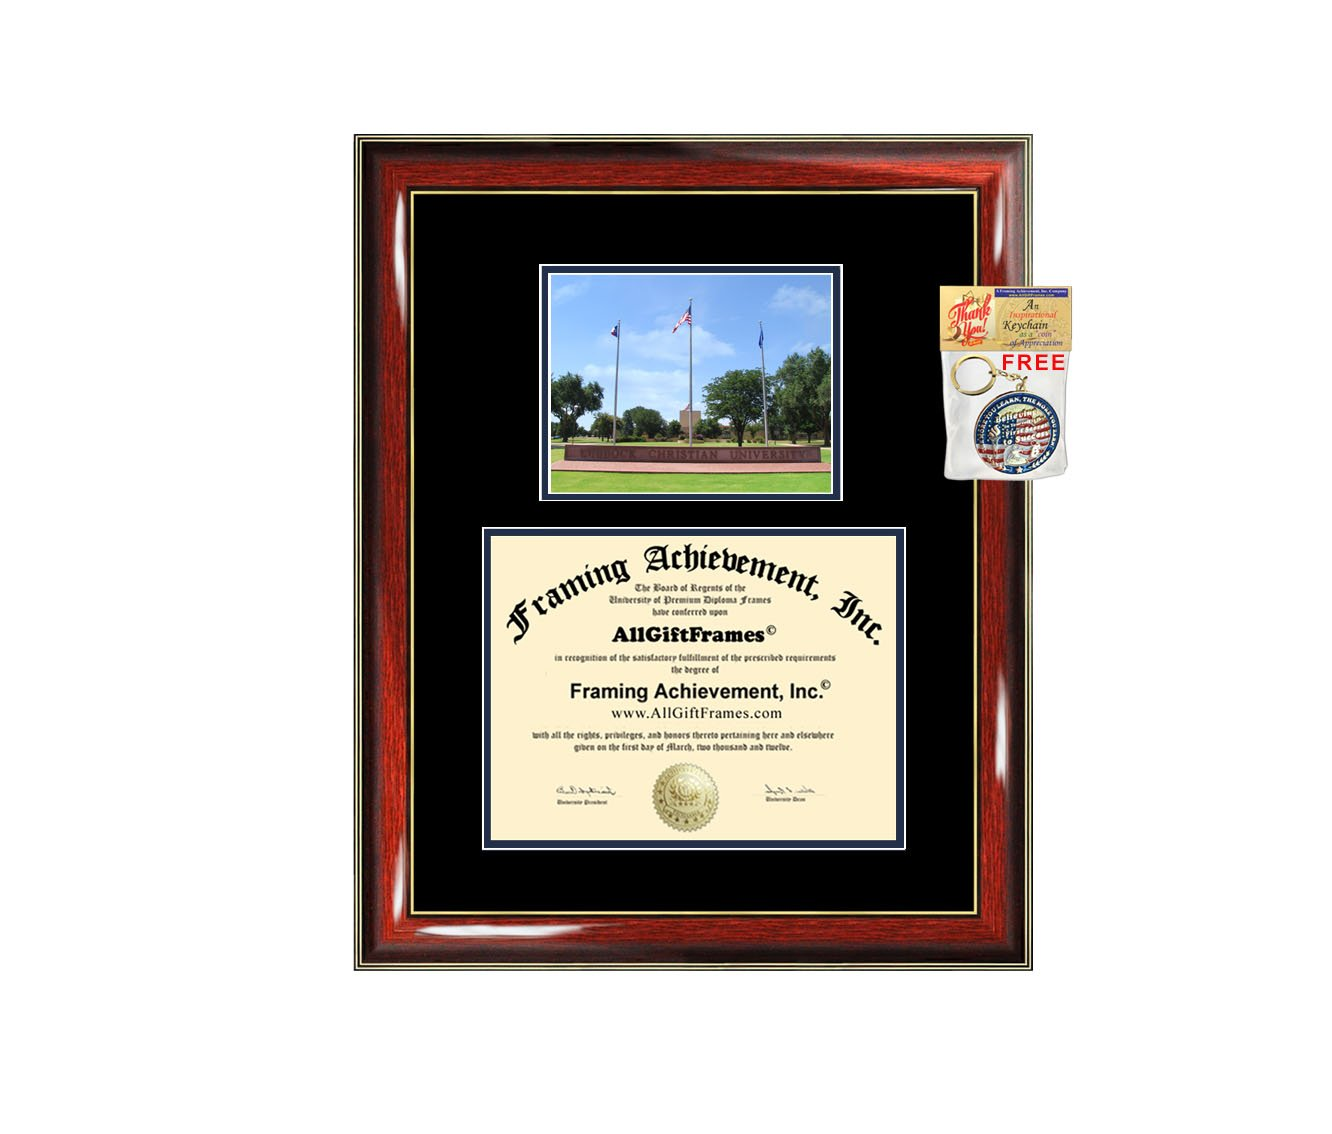 Lubbock Christian University Diploma Frame Graduation Degree Matted LCU College Campus Photo Graduation Gift Certificate Plaque Framing Collegiate